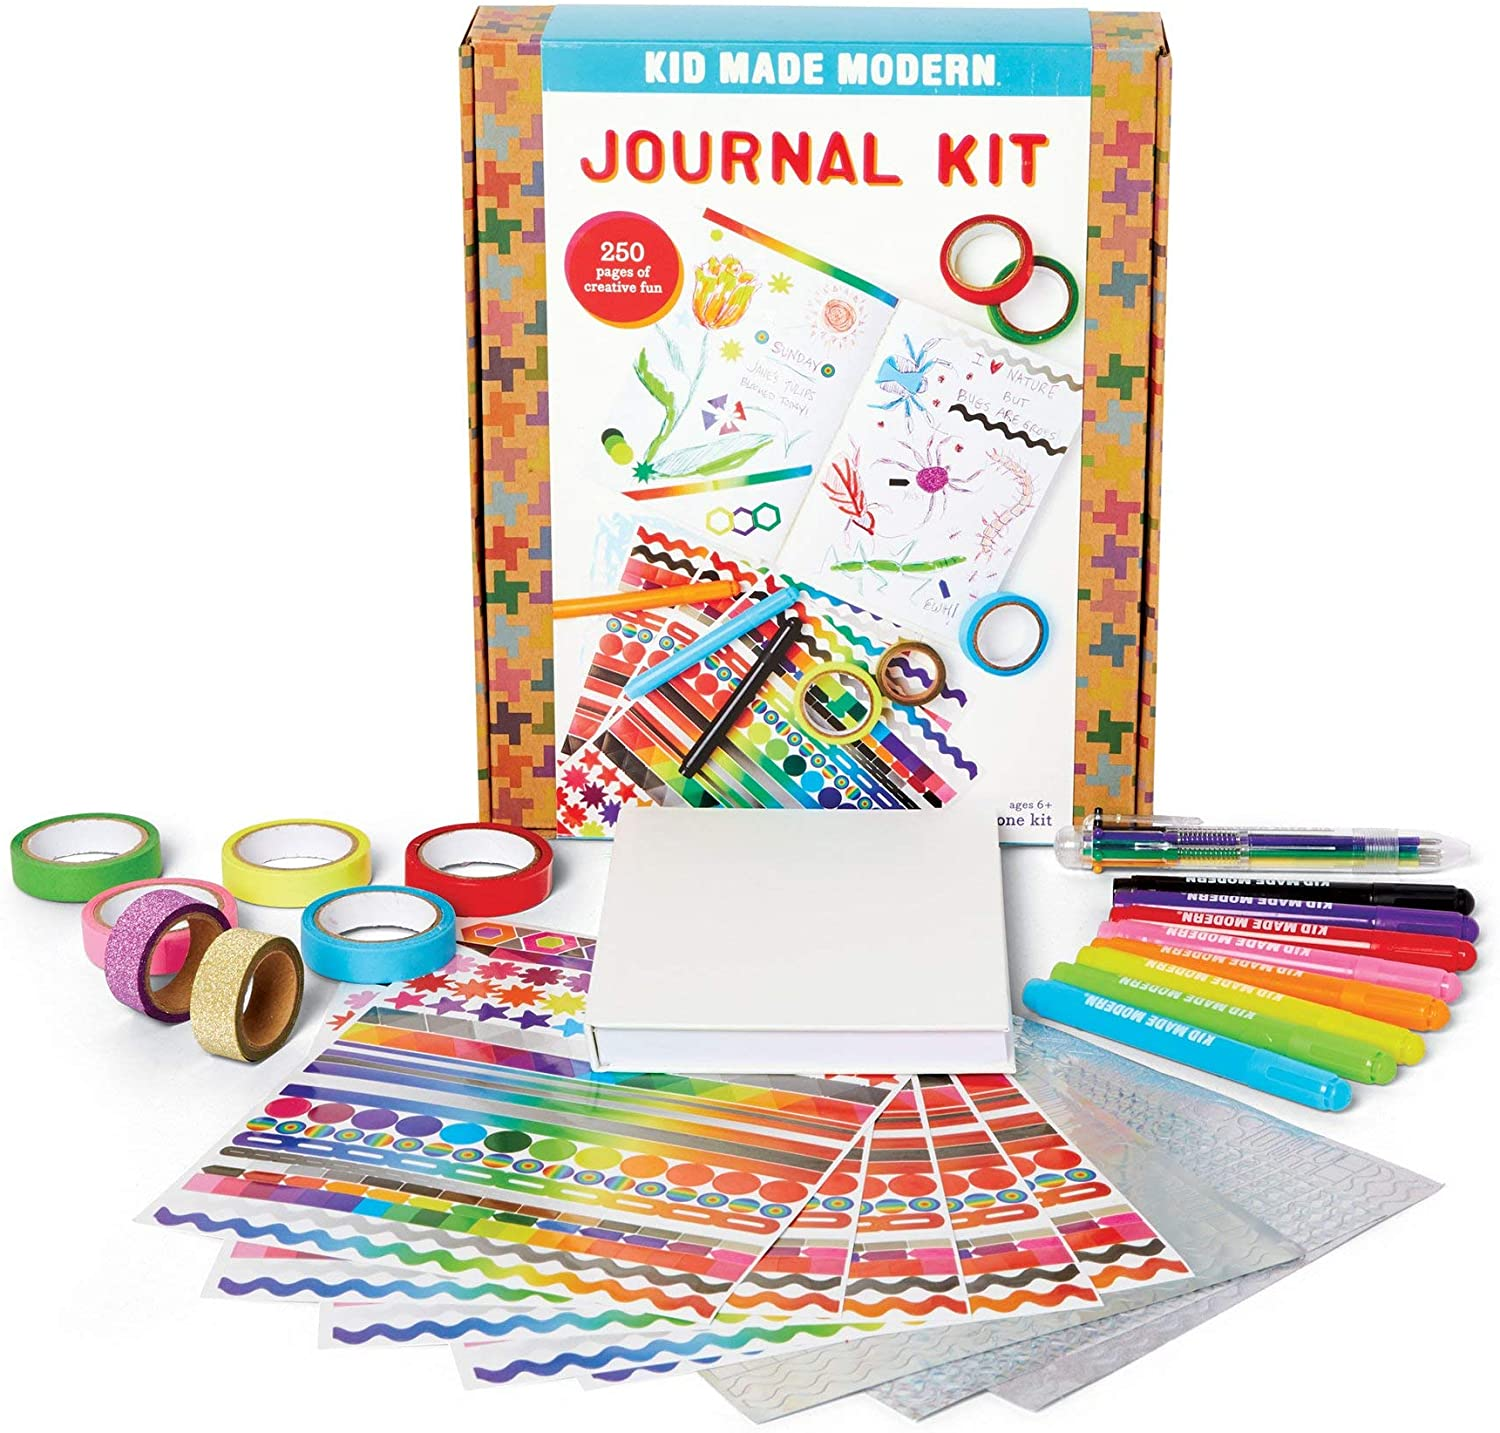 Kid Made Modern Journal Craft Kit - Draw and Write Kid Journal, Creative Art Supplies